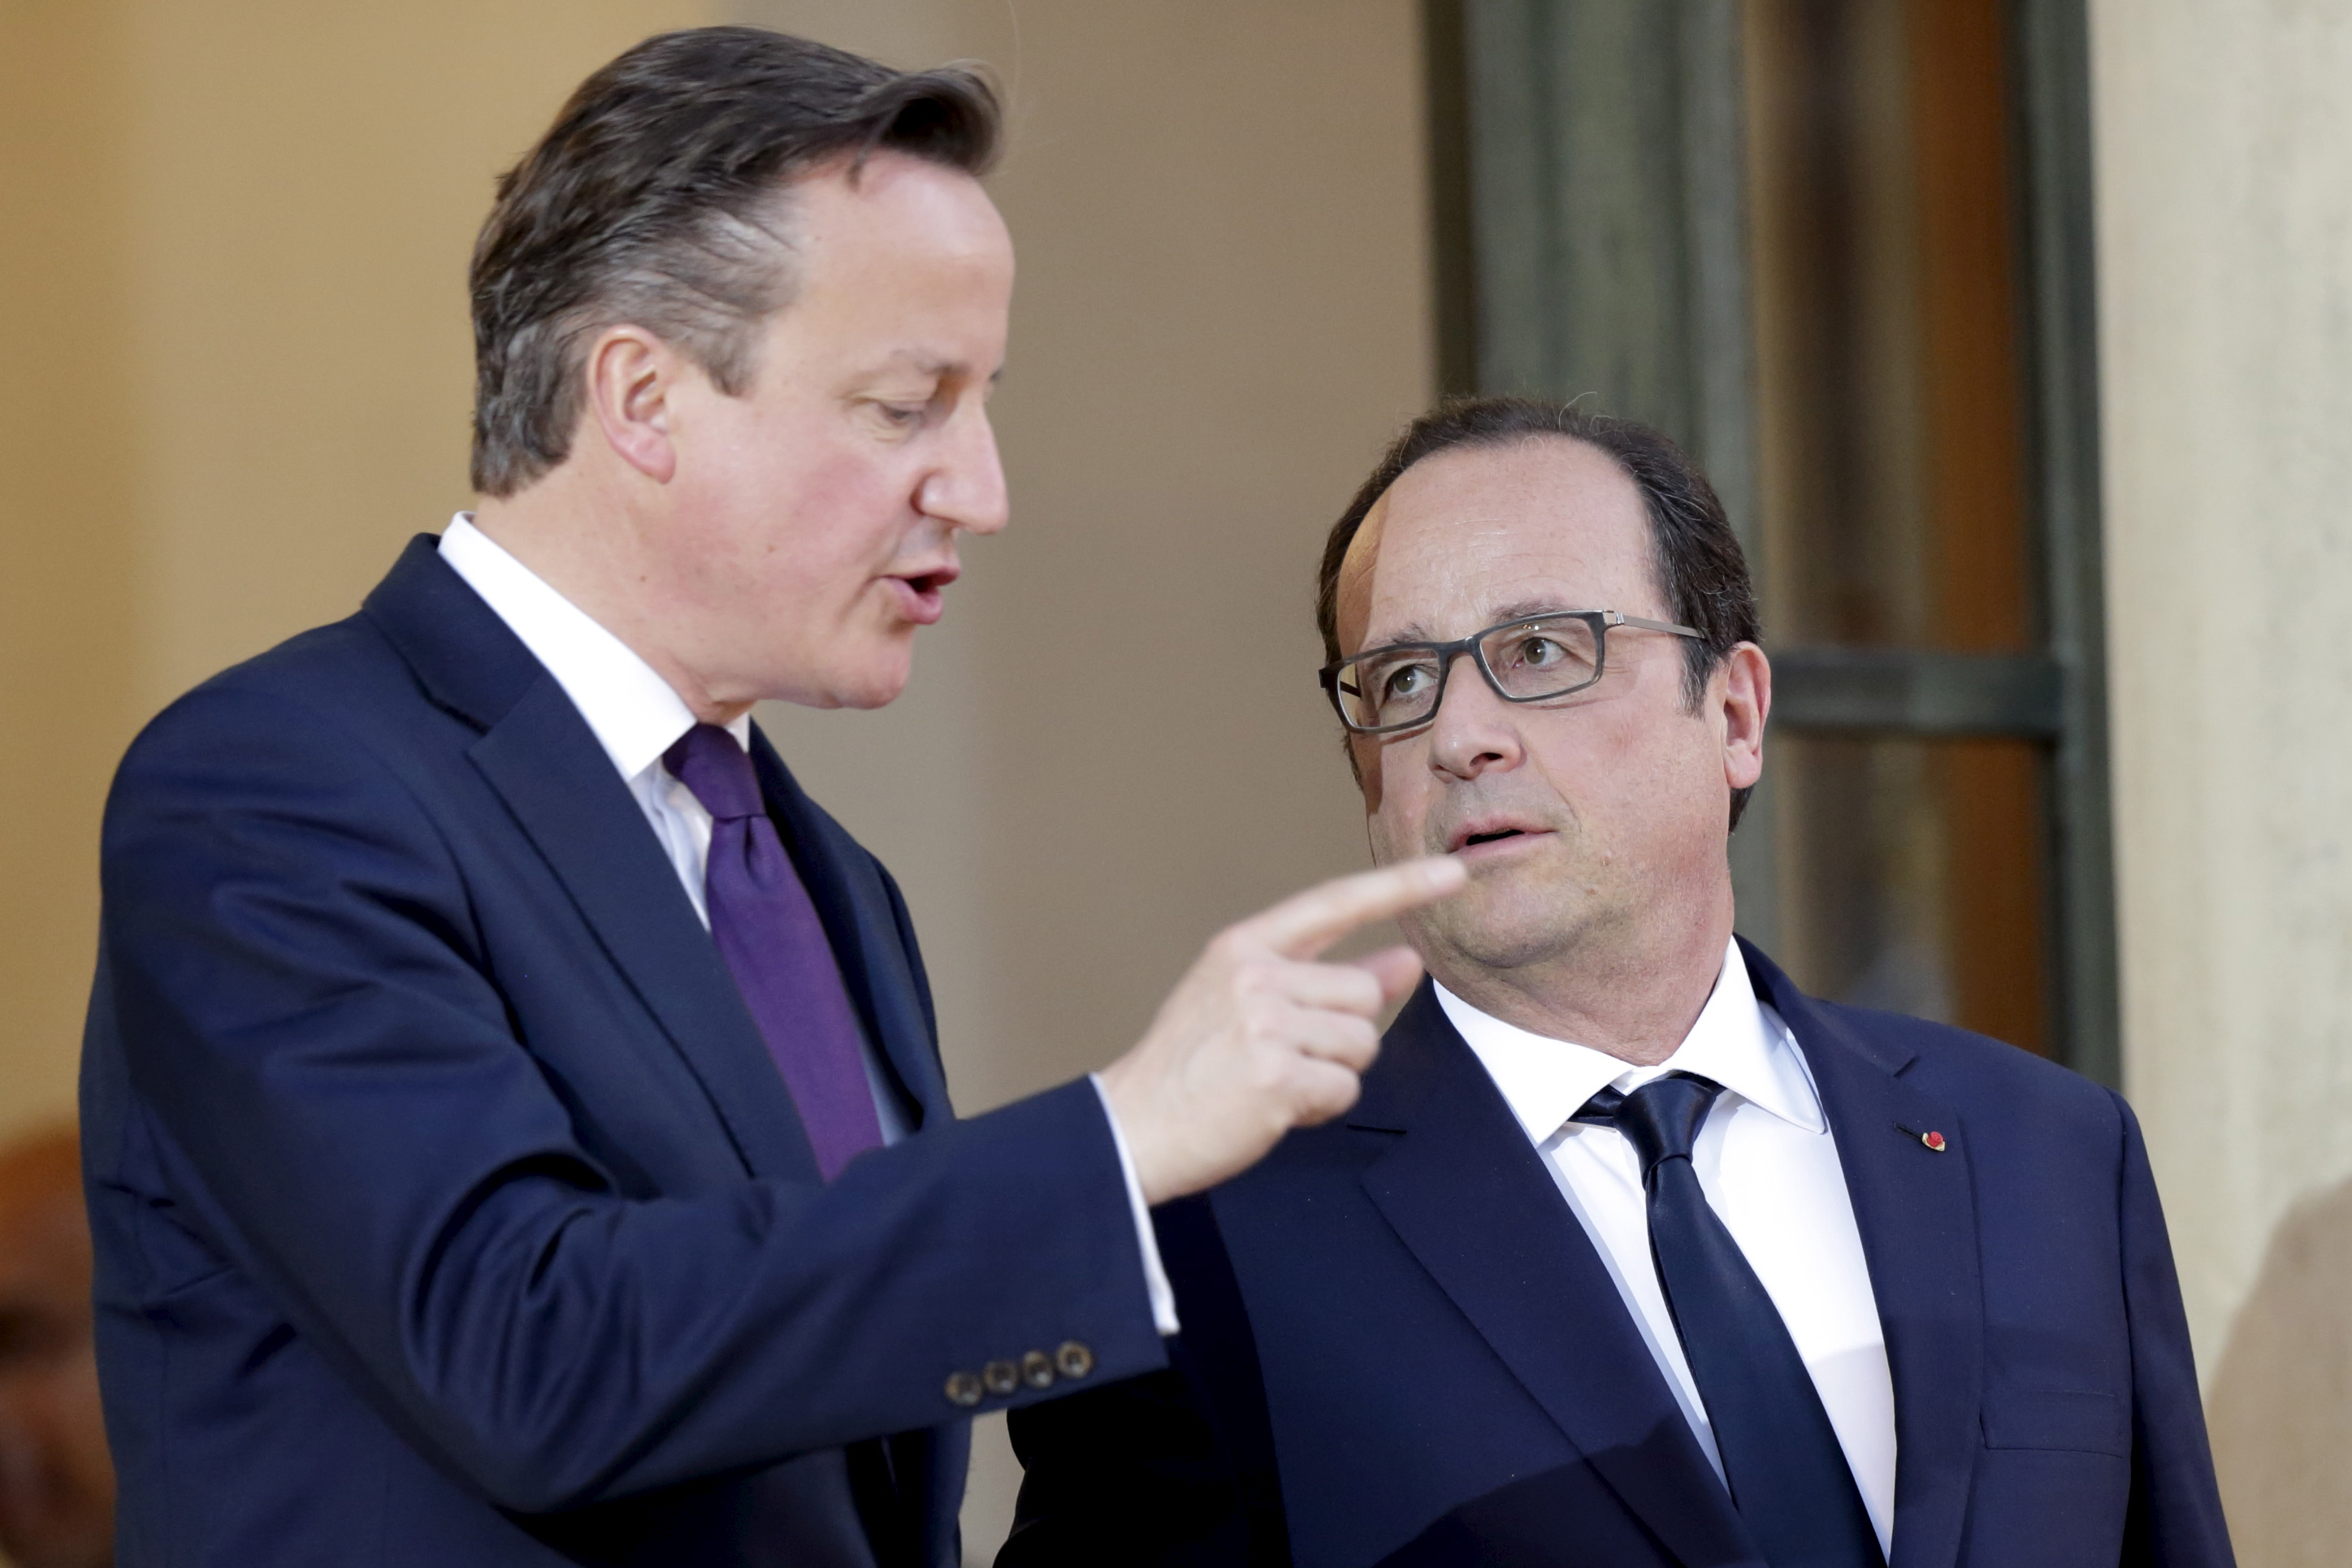 David Cameron - François Hollande